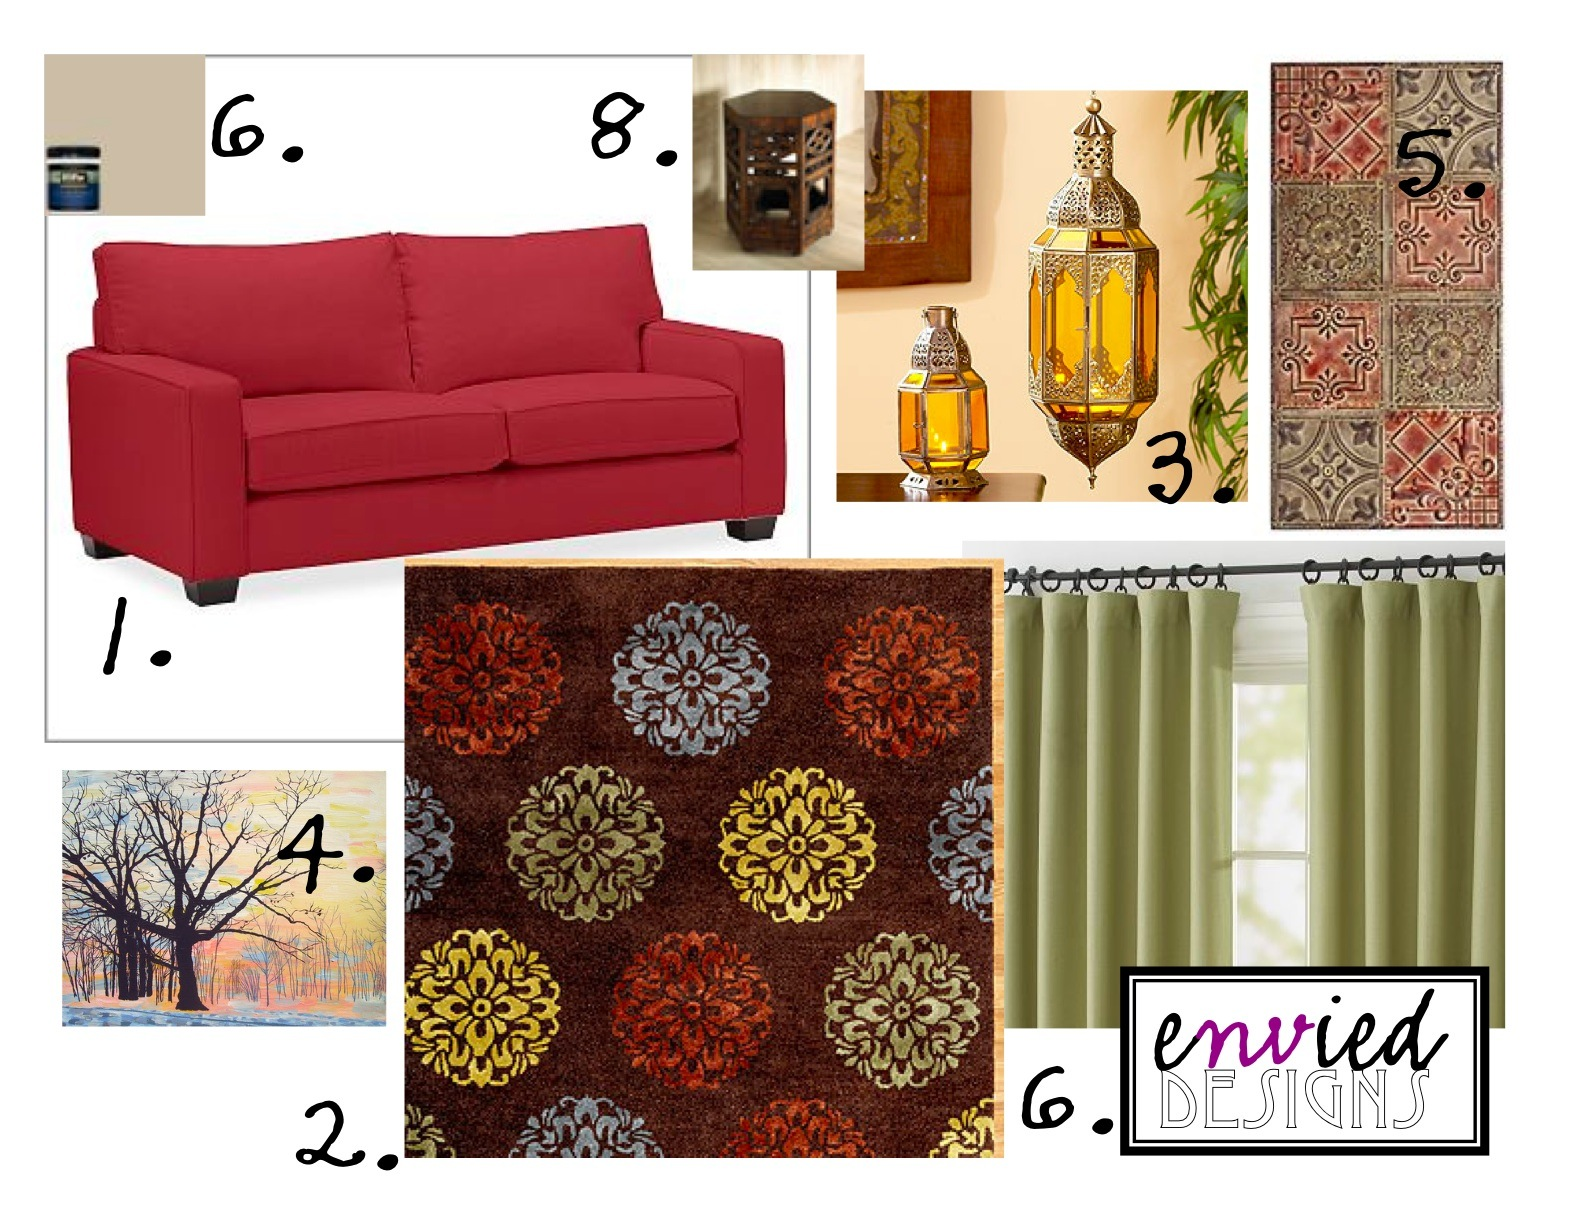 Envied Designs: Moroccan-inspired Living Room